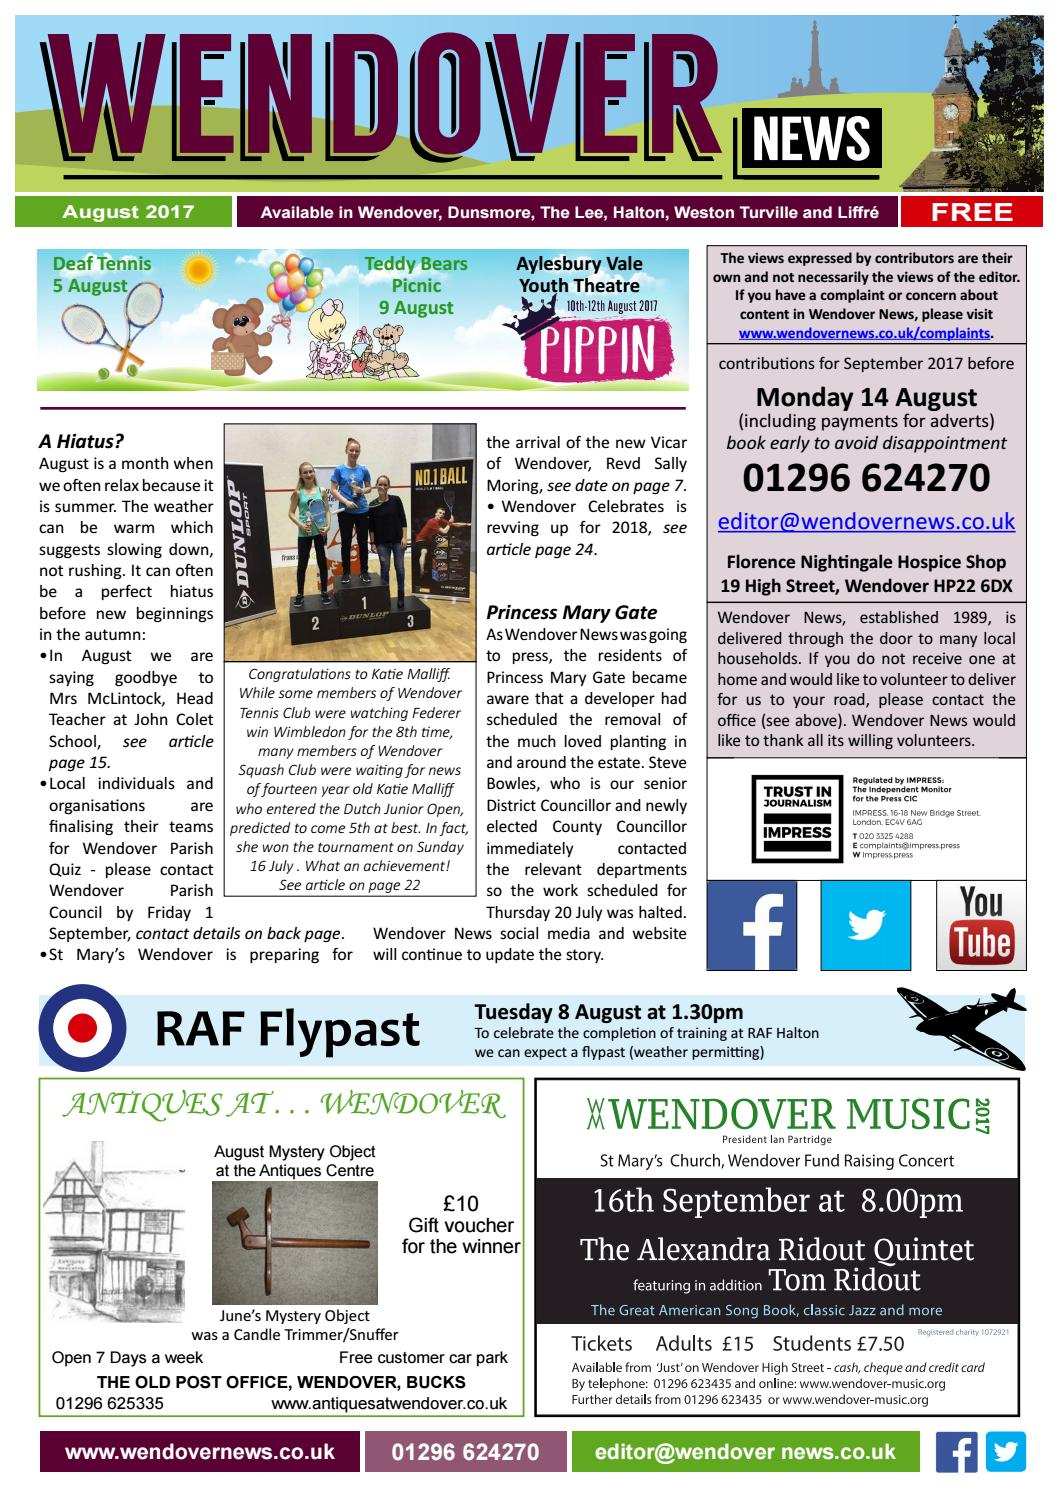 Wendover News August 2017 By